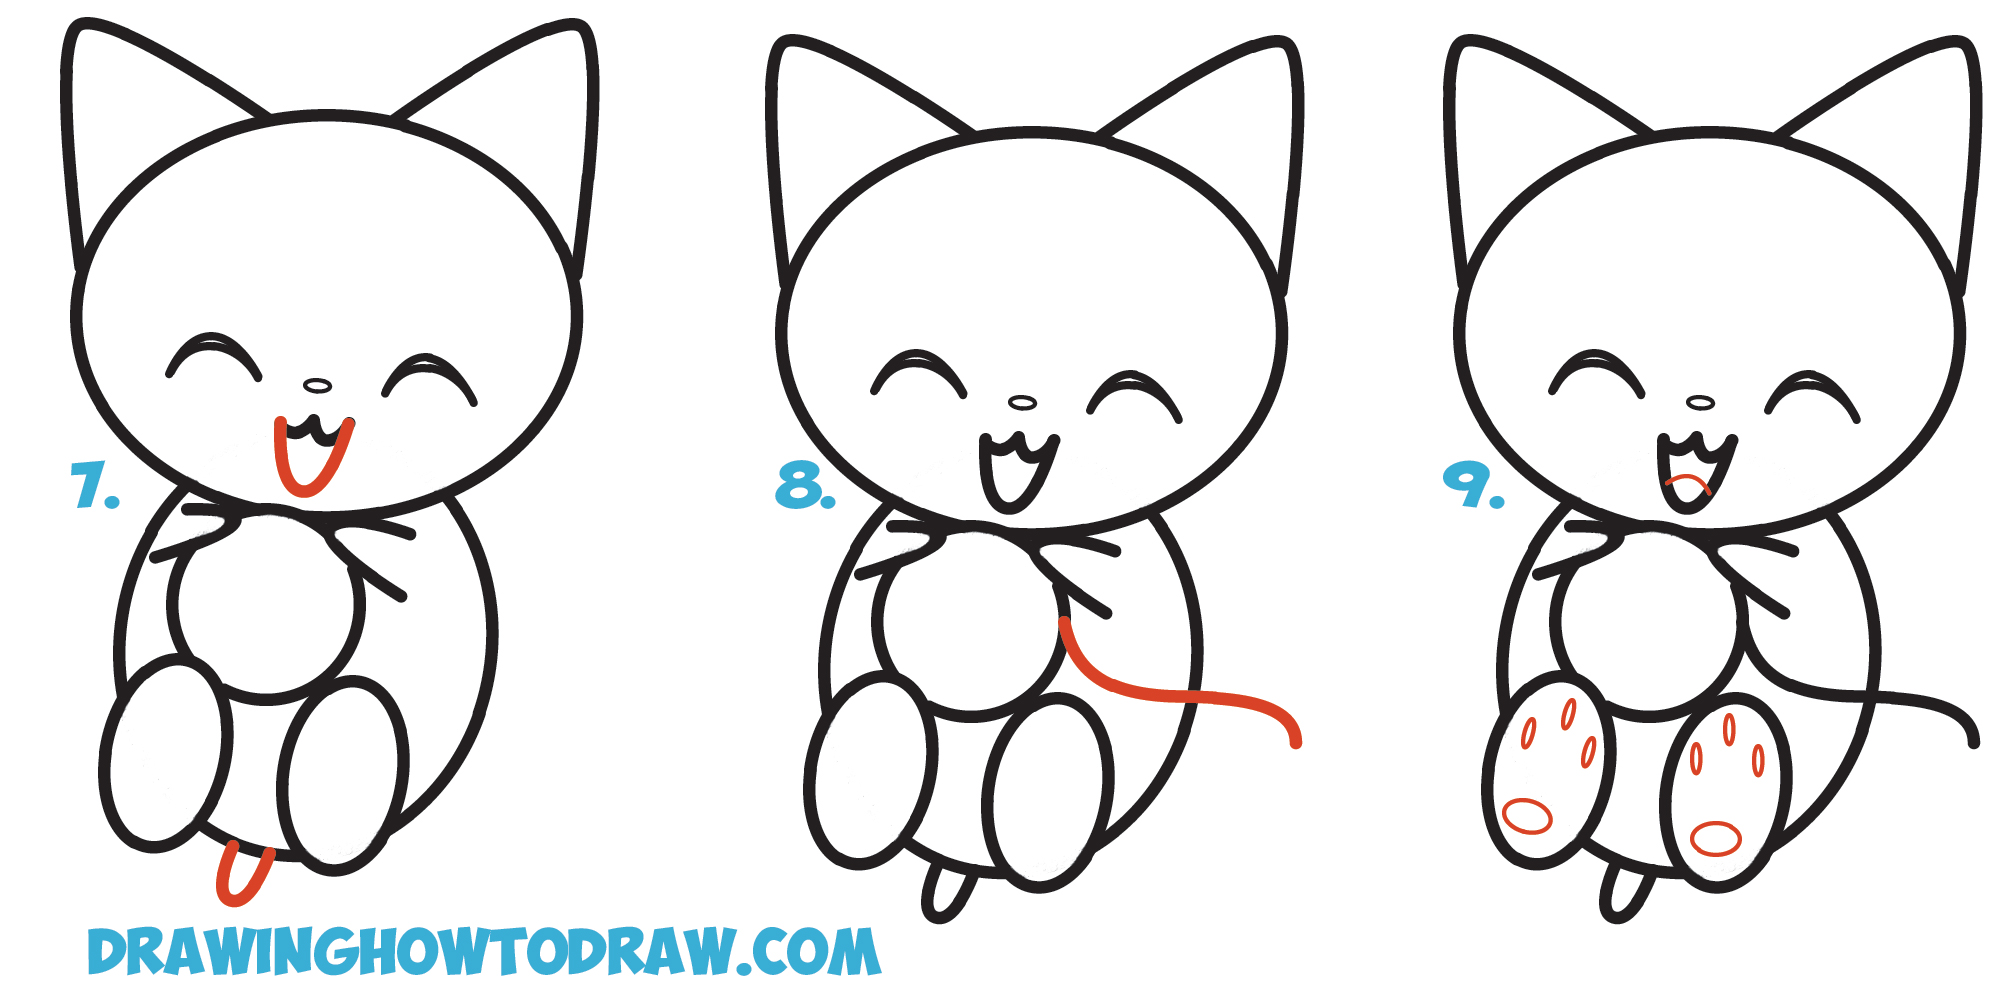 Uncategorized Steps To Draw A Cat how to draw cute kawaii kitten cat playing with yarn from number learn chibi cartoon yarn